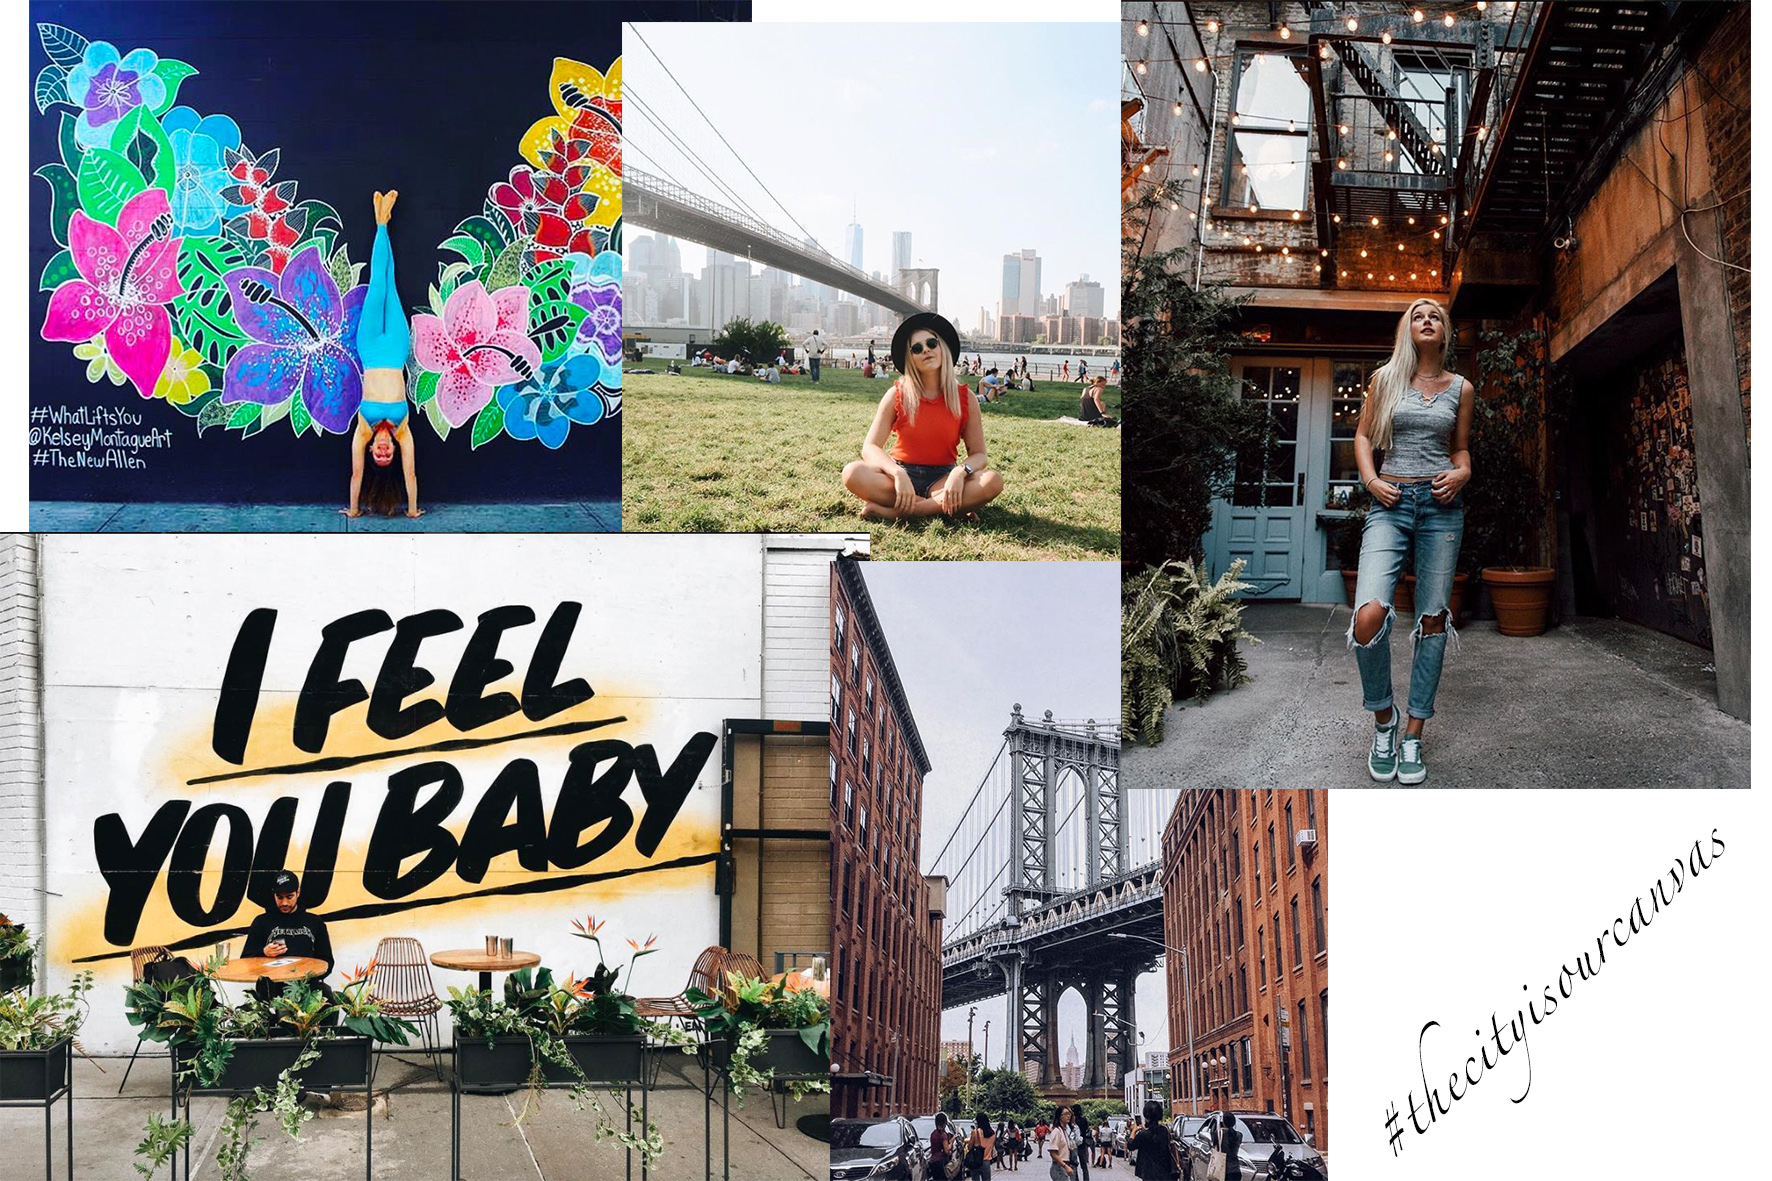 Wings on Allen, DUMBO Waterfront views, Freeman's Back-Alley, Feels at Baby Brasa & the GG Money-shot (PC:  Carterfish  ,  Chanelle_maaa ,  Sportnastya ,  Msannilange ,  Kelseymontagueart )